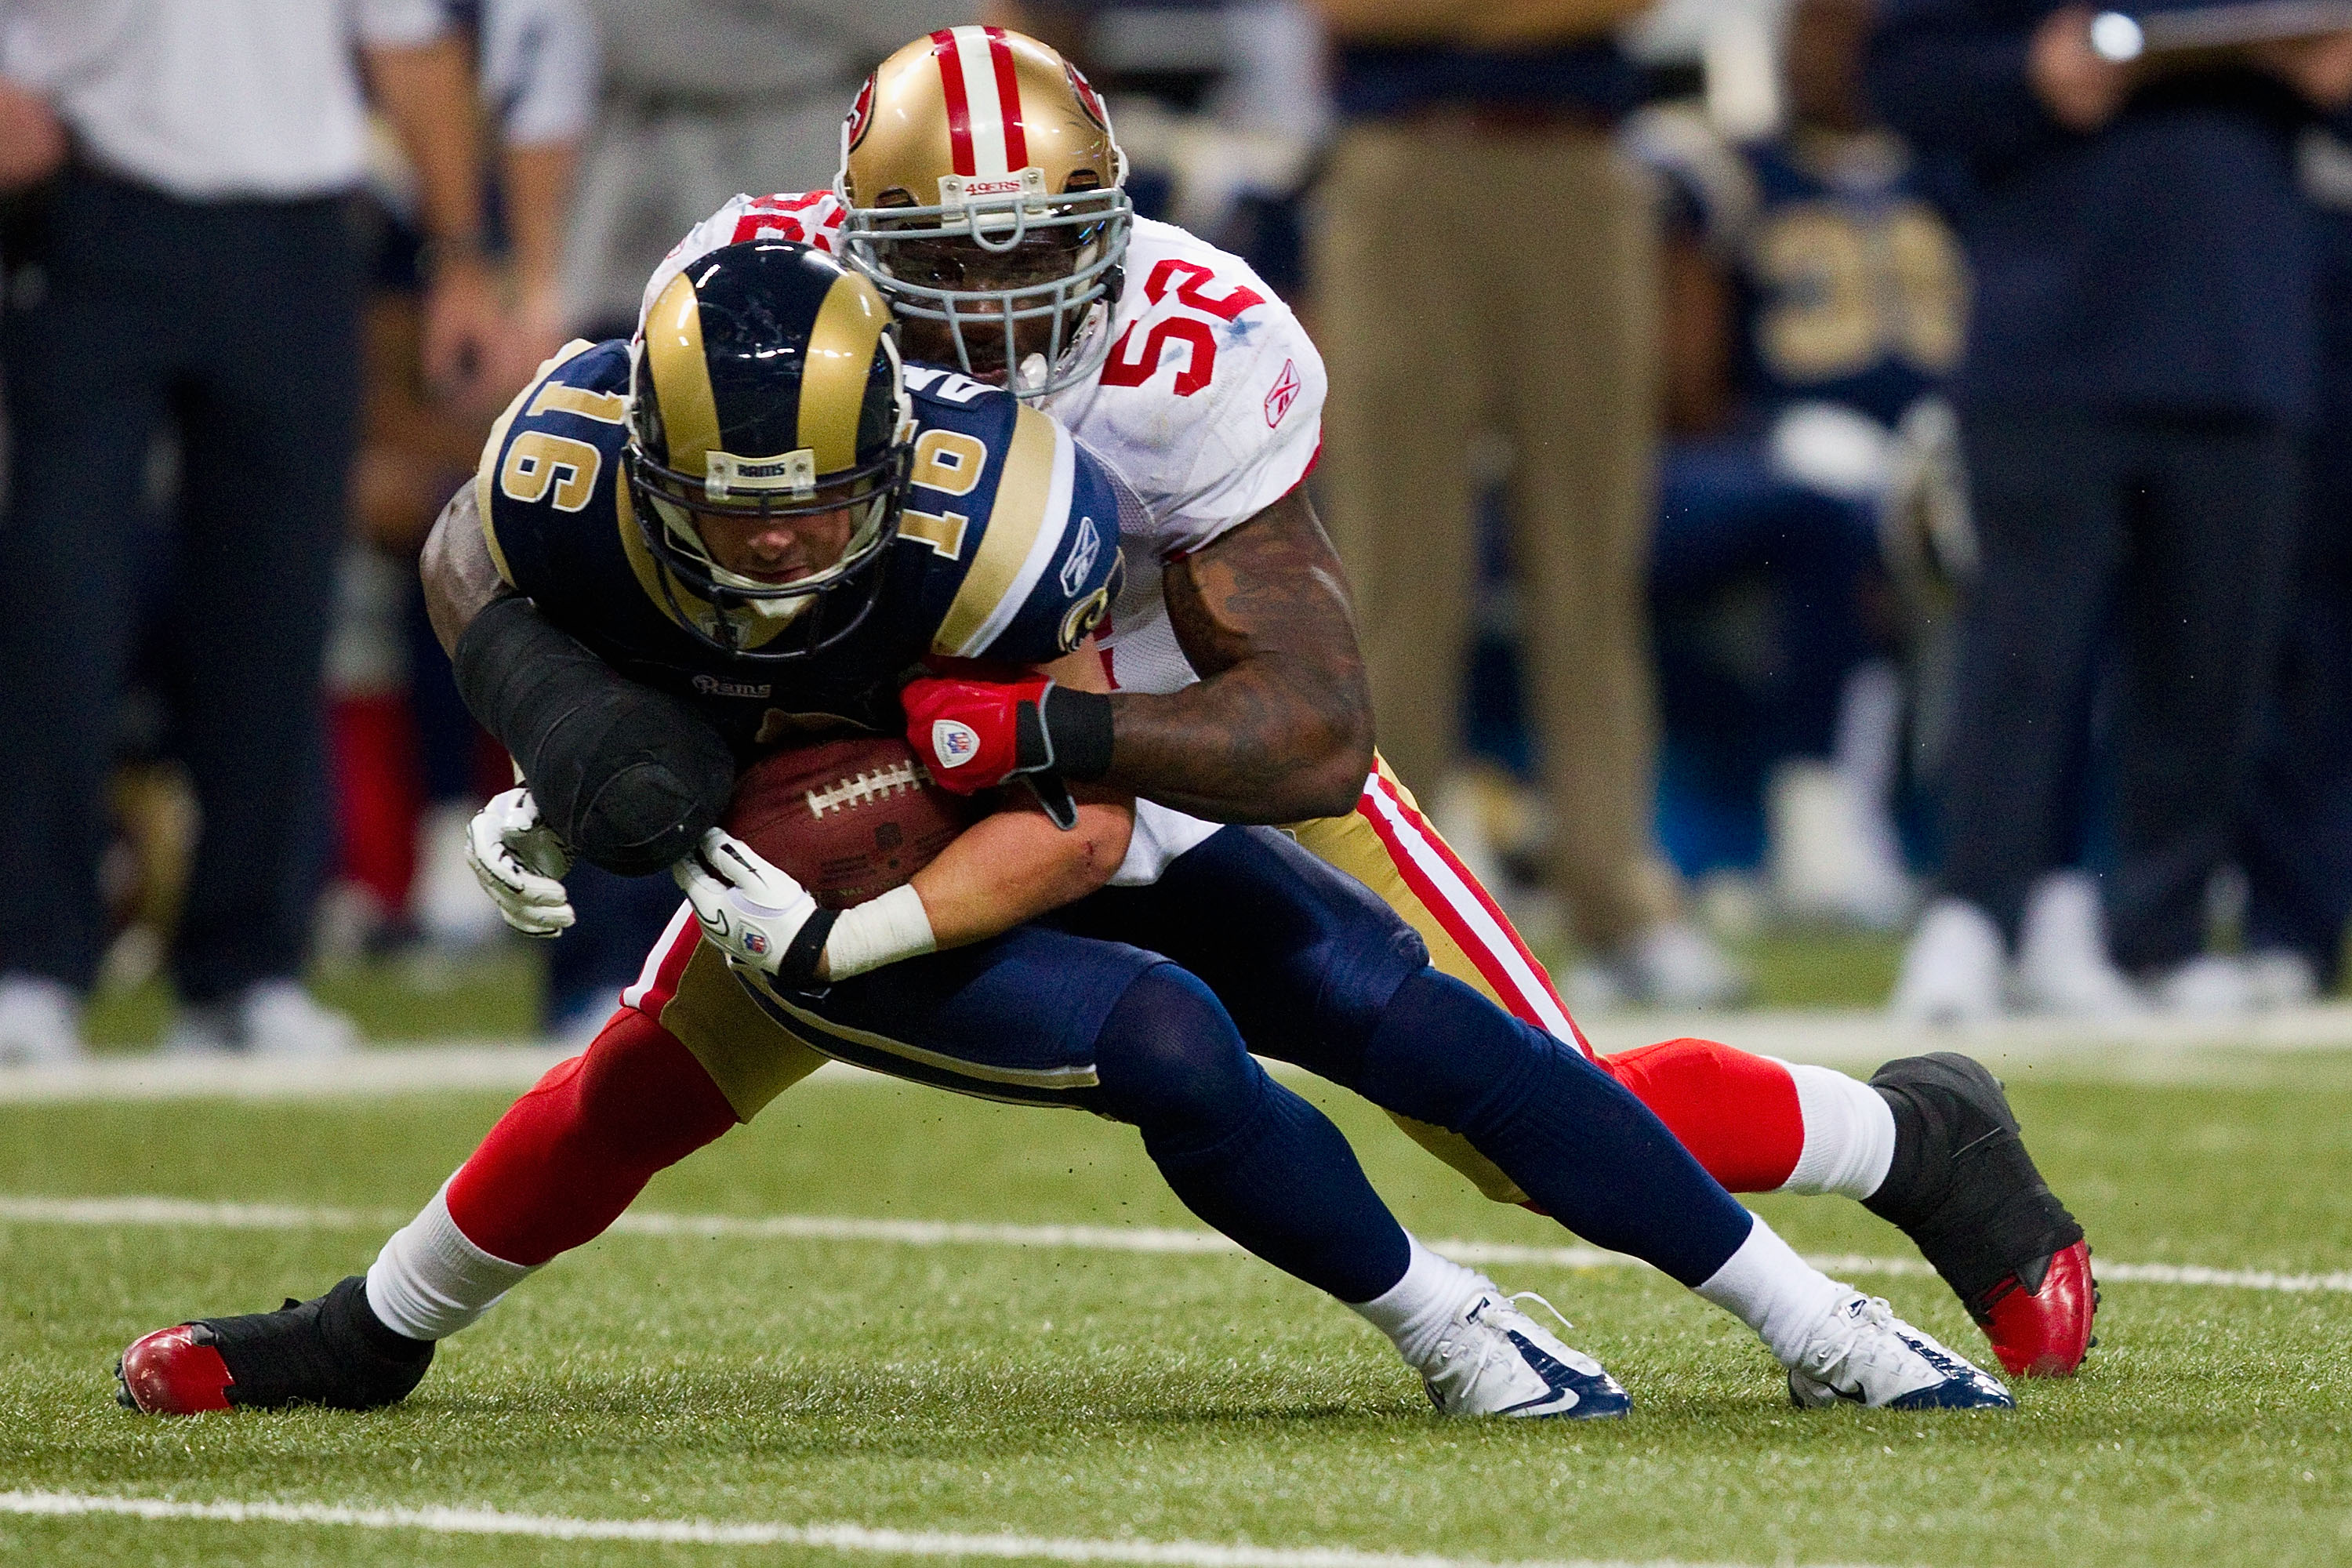 ST. LOUIS, MO - DECEMBER 26: Patrick Willis #52 of the San Francisco 49ers tackles Danny Amendola #16 of the St. Louis Rams at the Edward Jones Dome on December 26, 2010 in St. Louis, Missouri. The Rams beat the 49ers 25-17. (Photo by Dilip Vishwanat/Gett